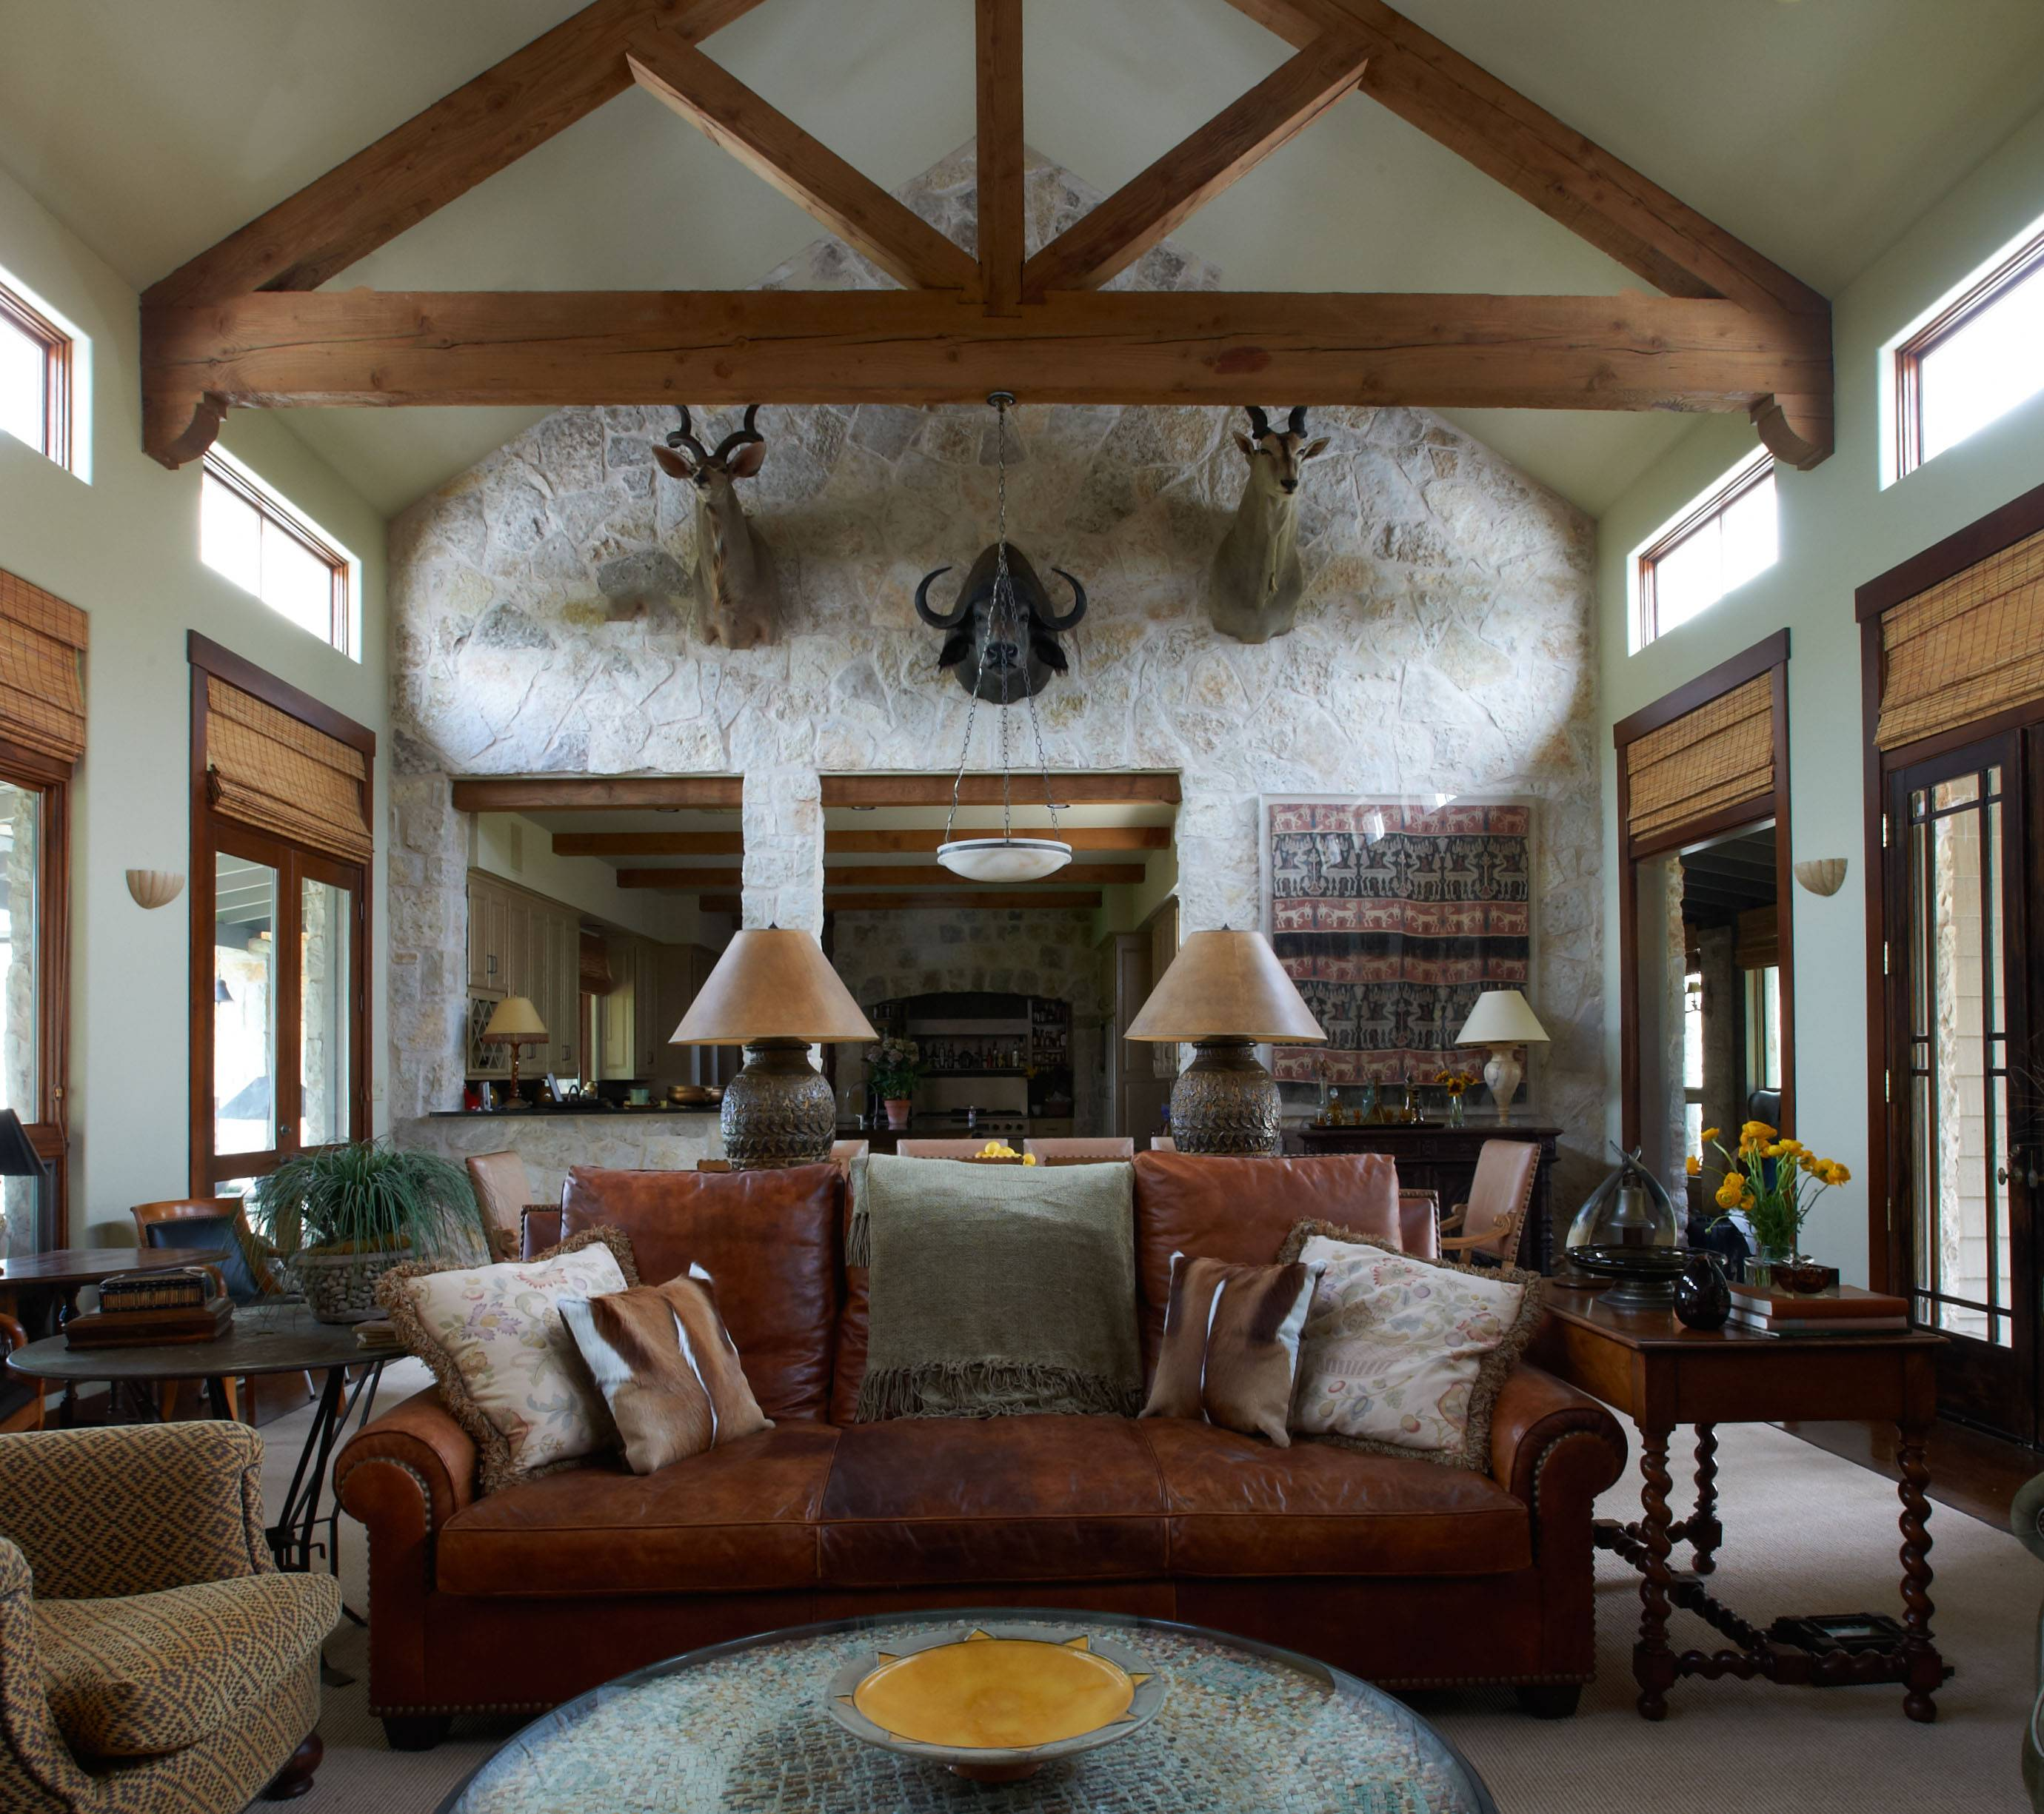 The main room of this ranch house in Glen Rose, Texas, was designed by interior designer Jan Showers.